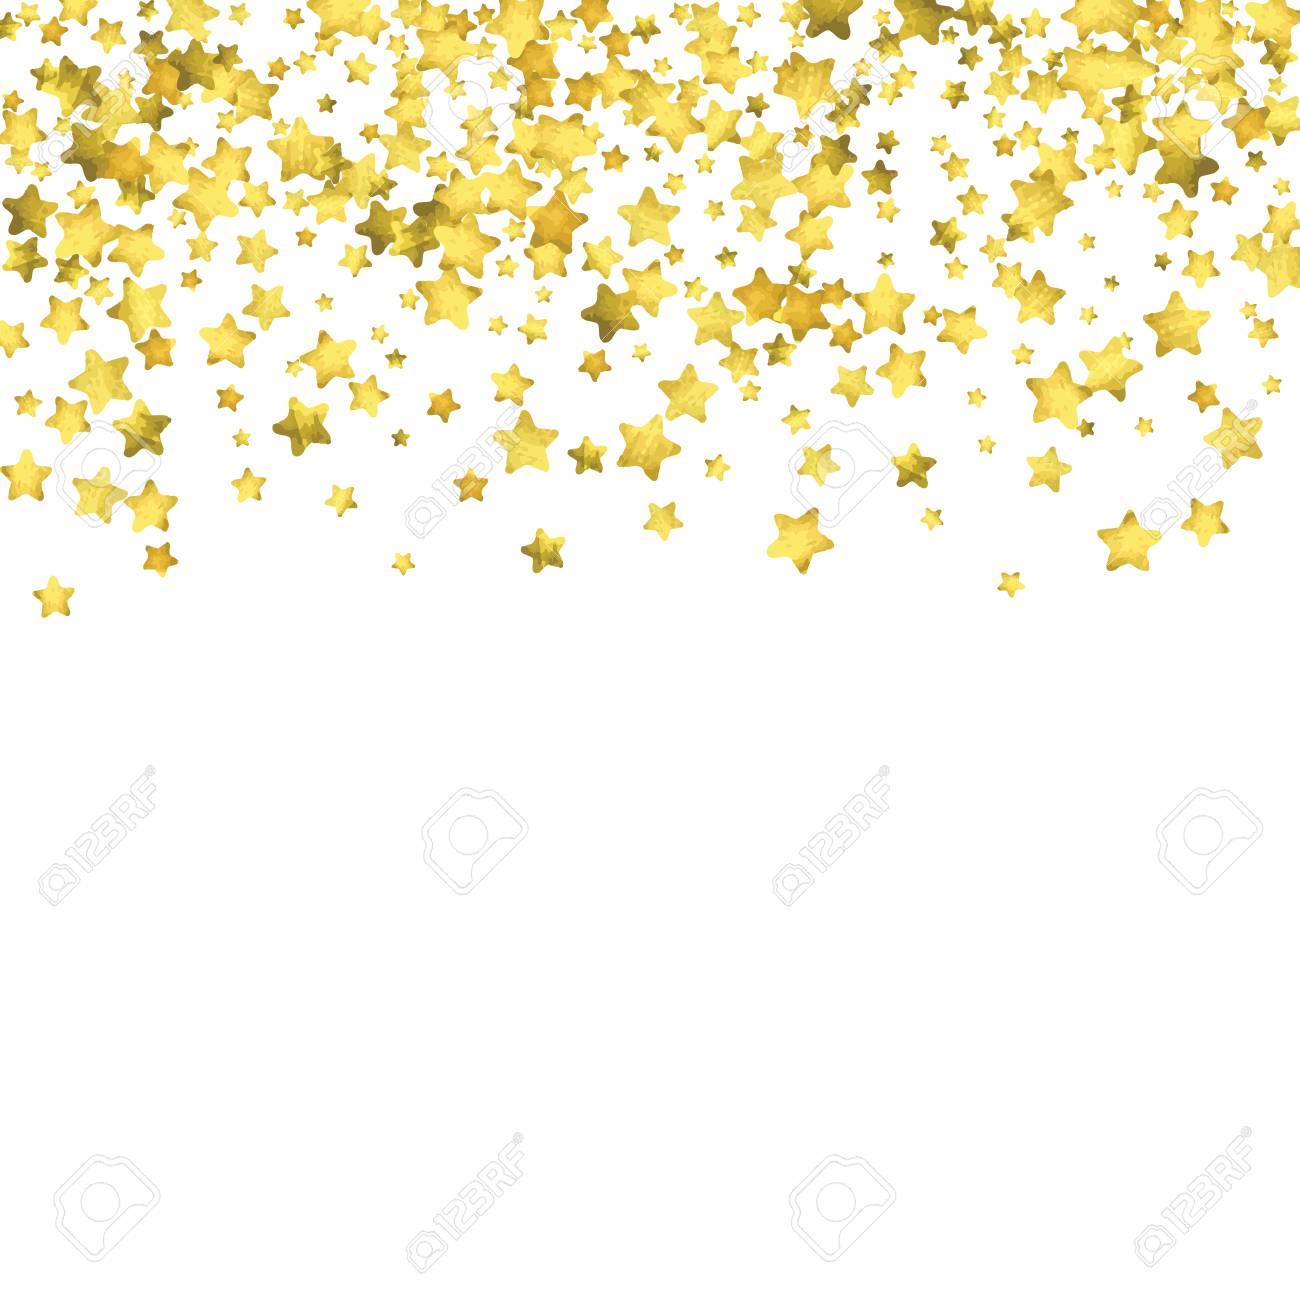 Star Confetti Gold Random Background Bright Design